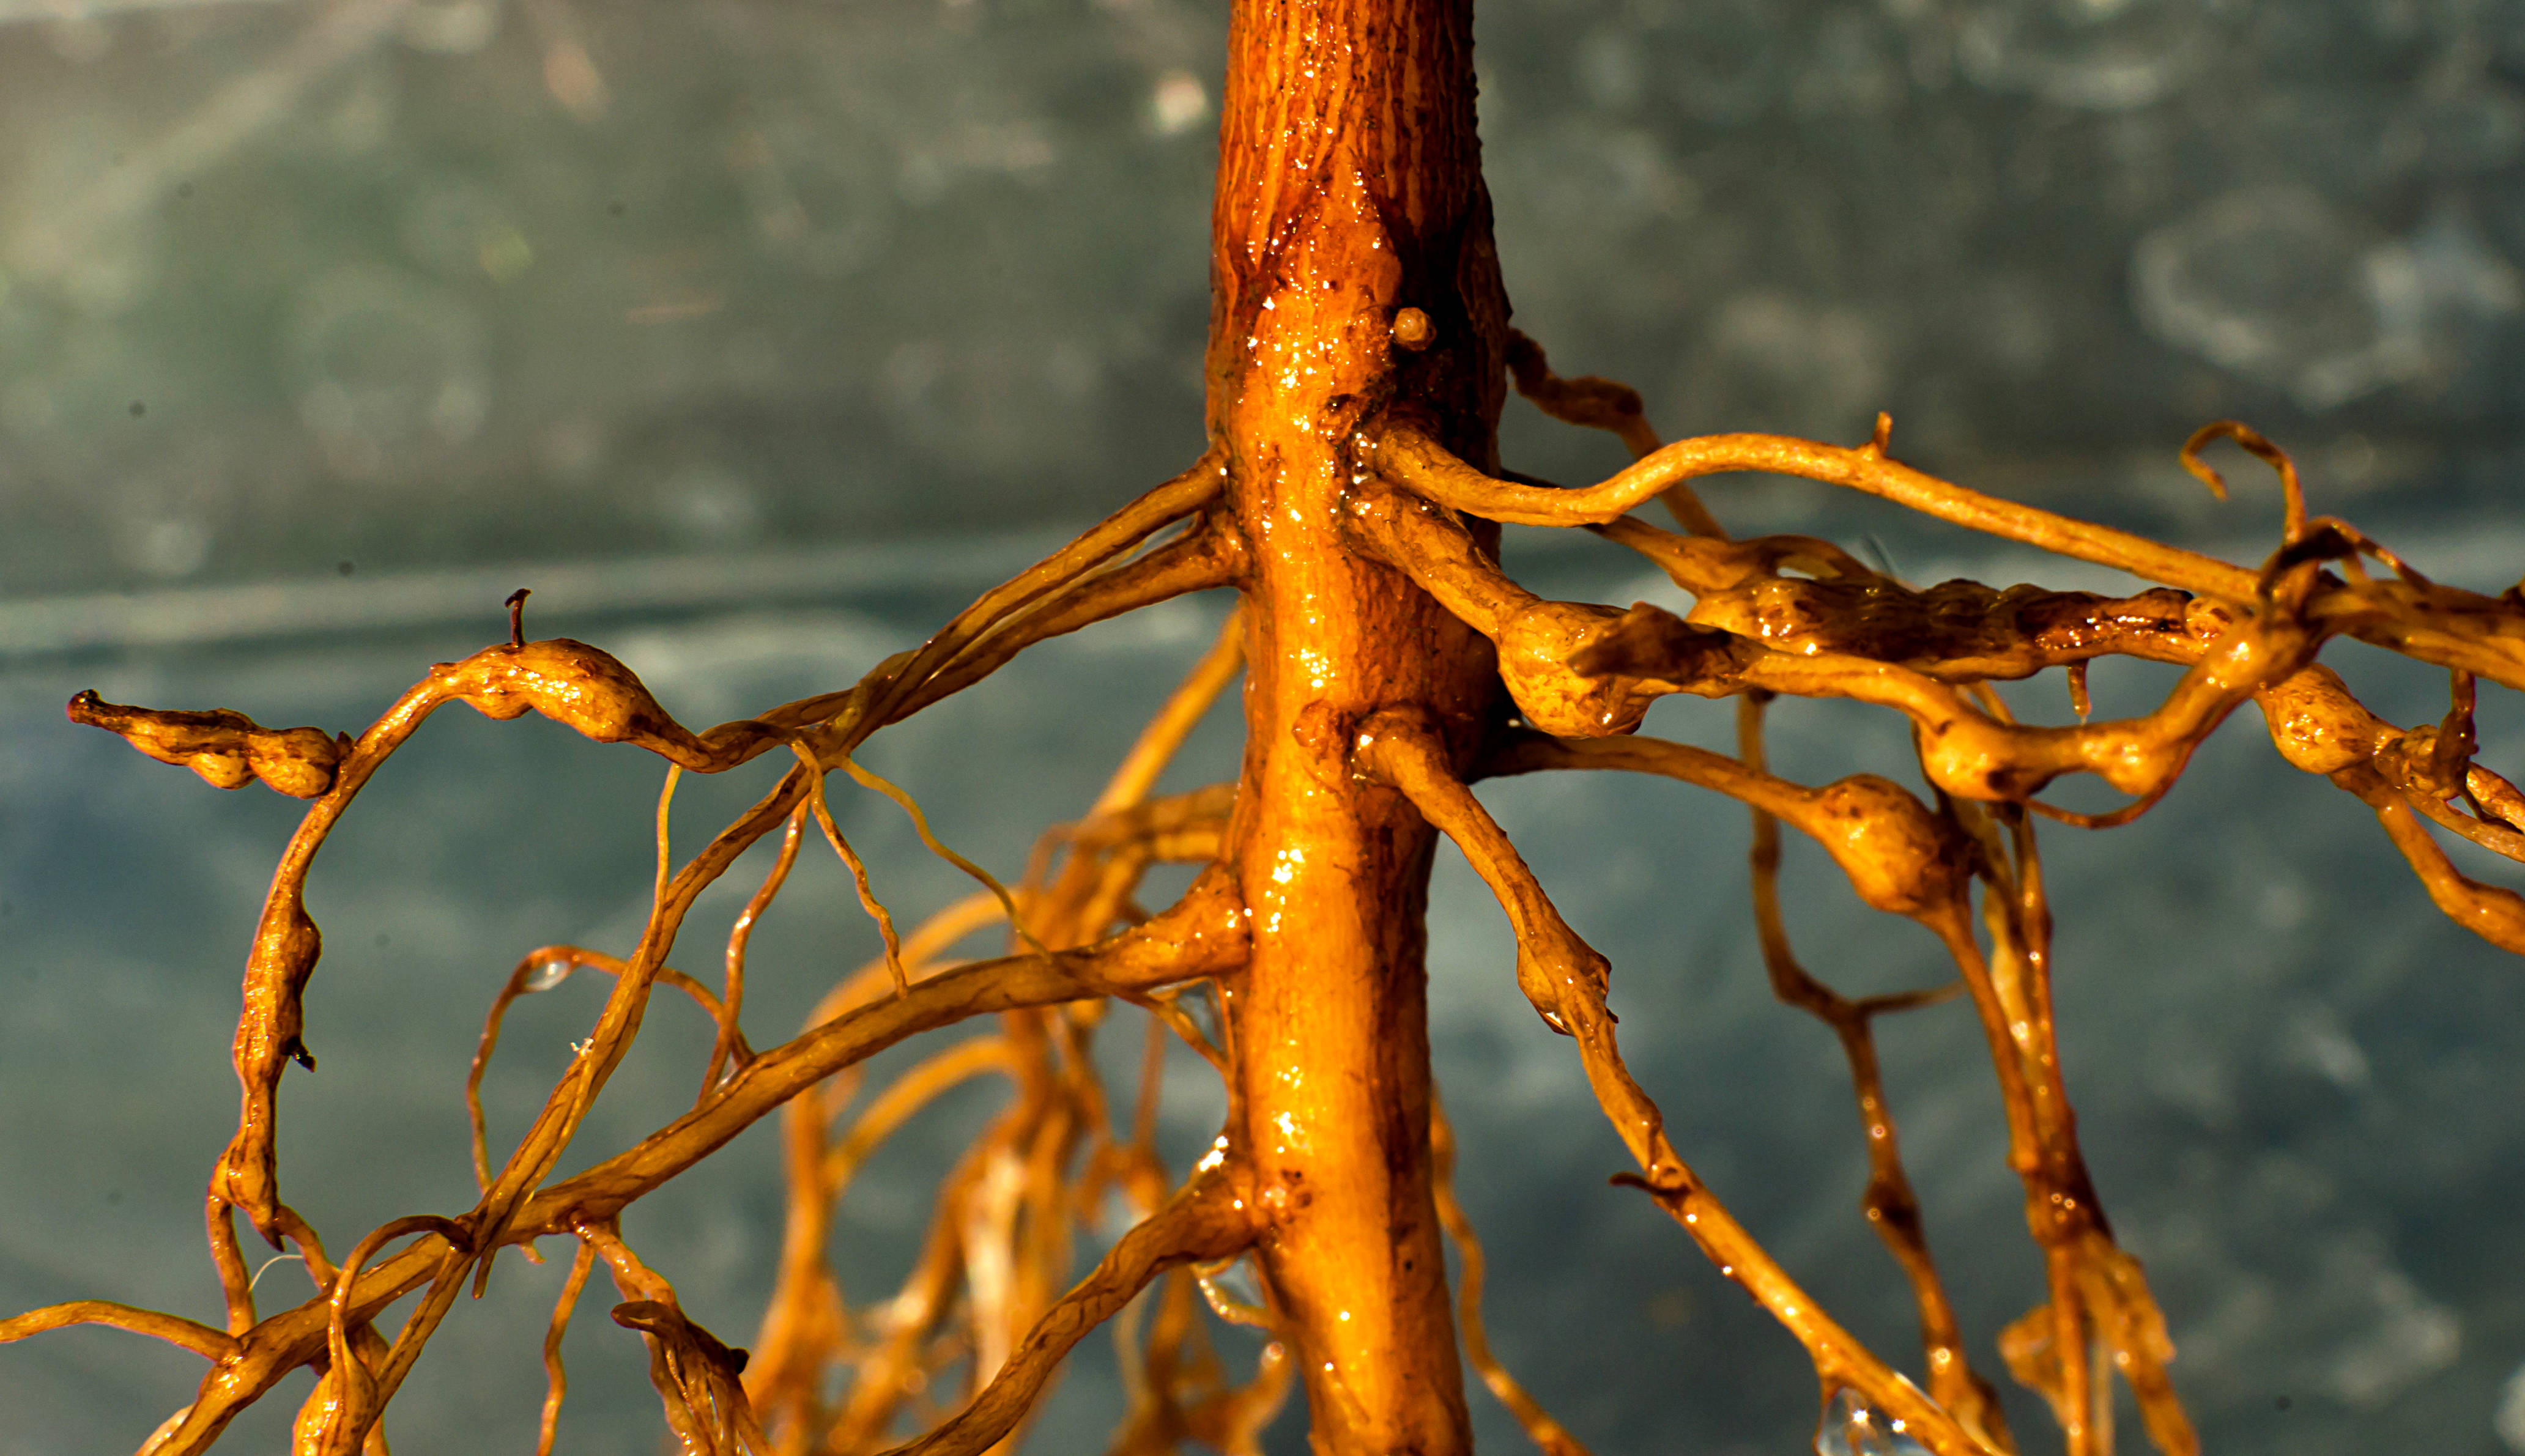 Cotton roots infected with root-knot nematodes swell in response to the infection. These knots serve as feeding sites where nematodes (microscopic worms) grow, produce more eggs and stunt the plant's growth.